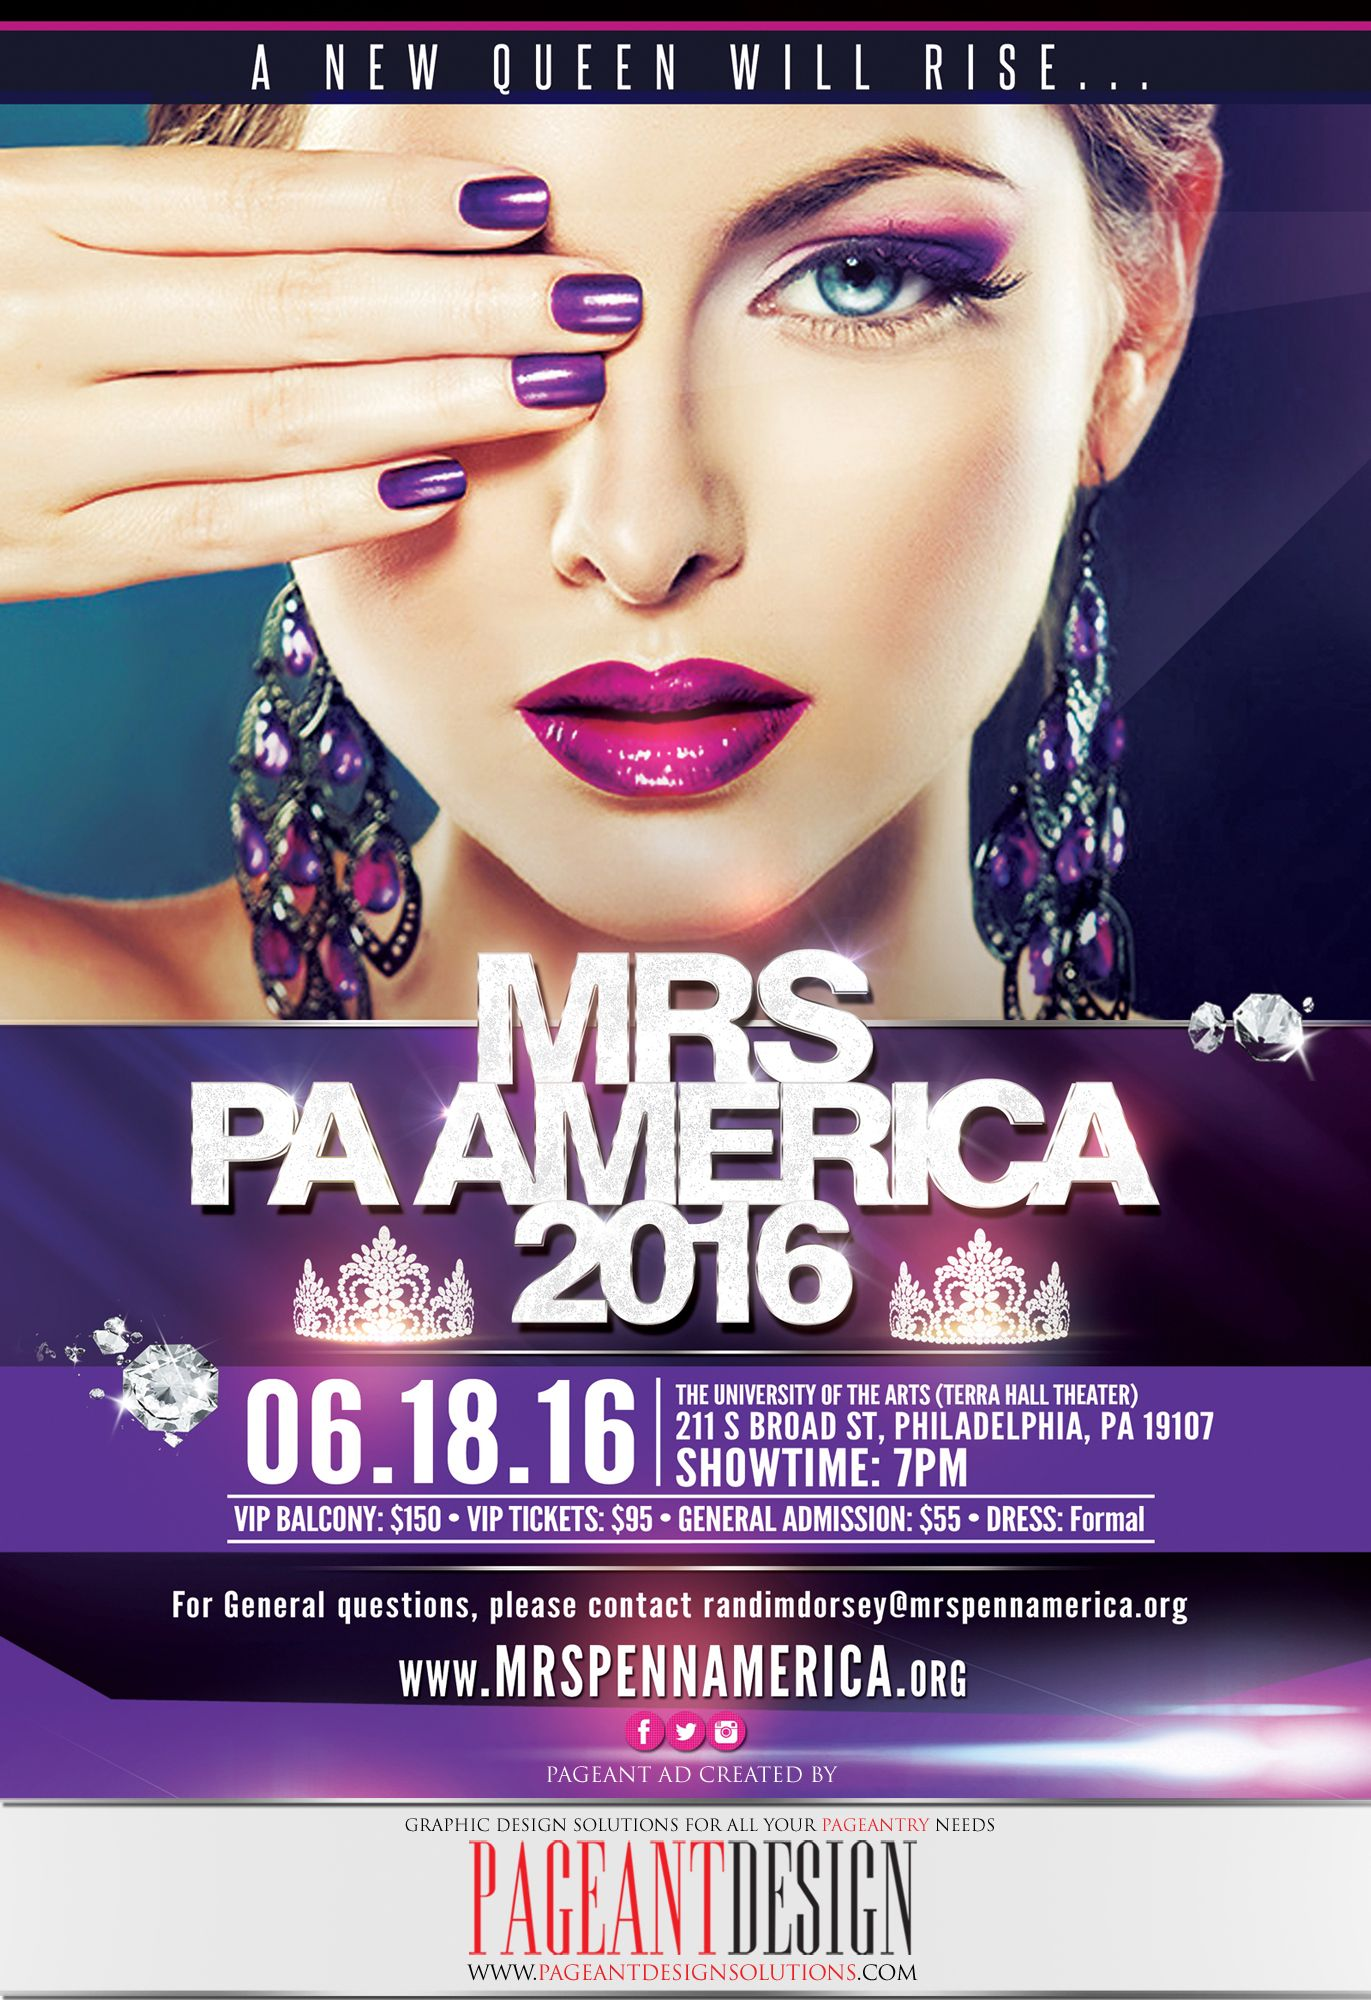 pa america 2016 pageant recruitment flyer directors get in touch if you